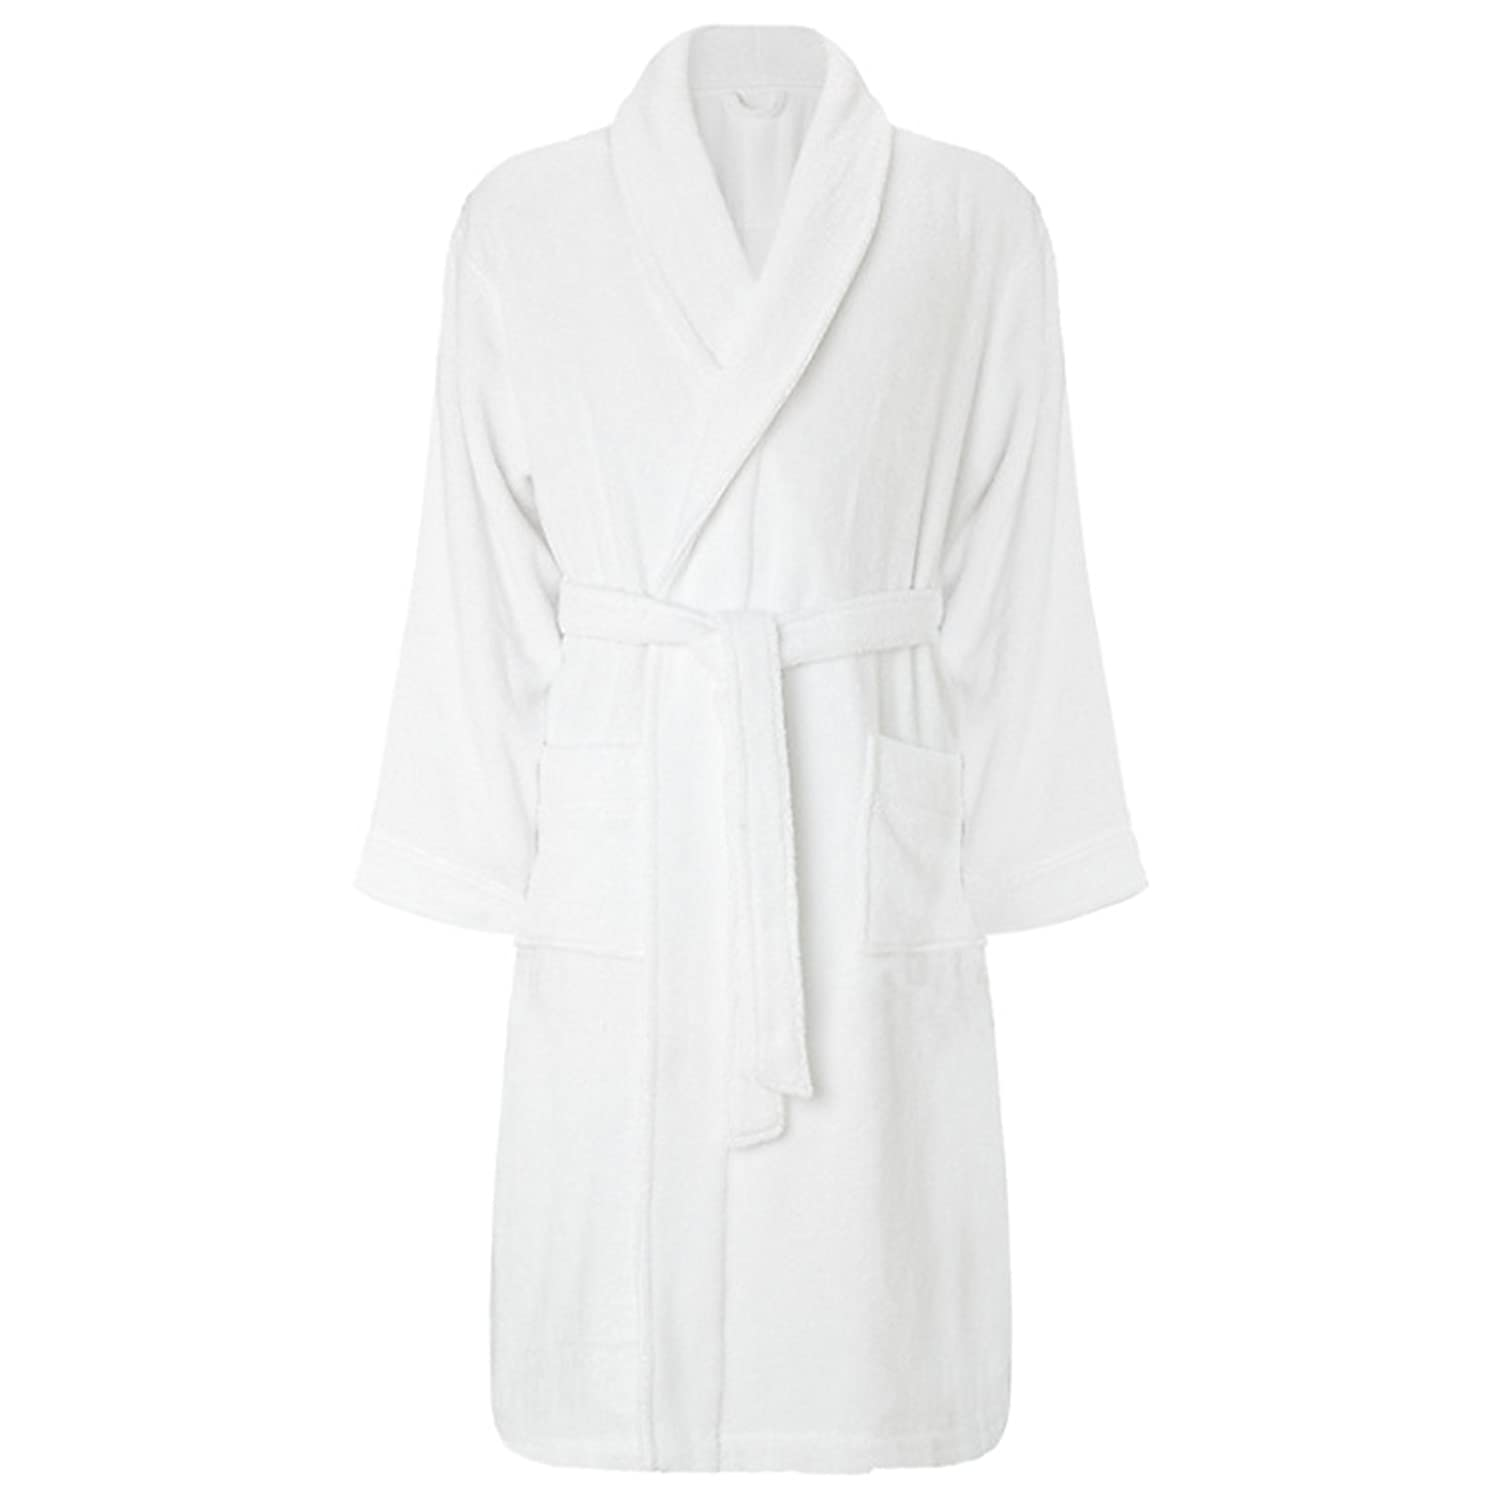 Top 20 Best Bathrobes for Women Reviews 2016-2017